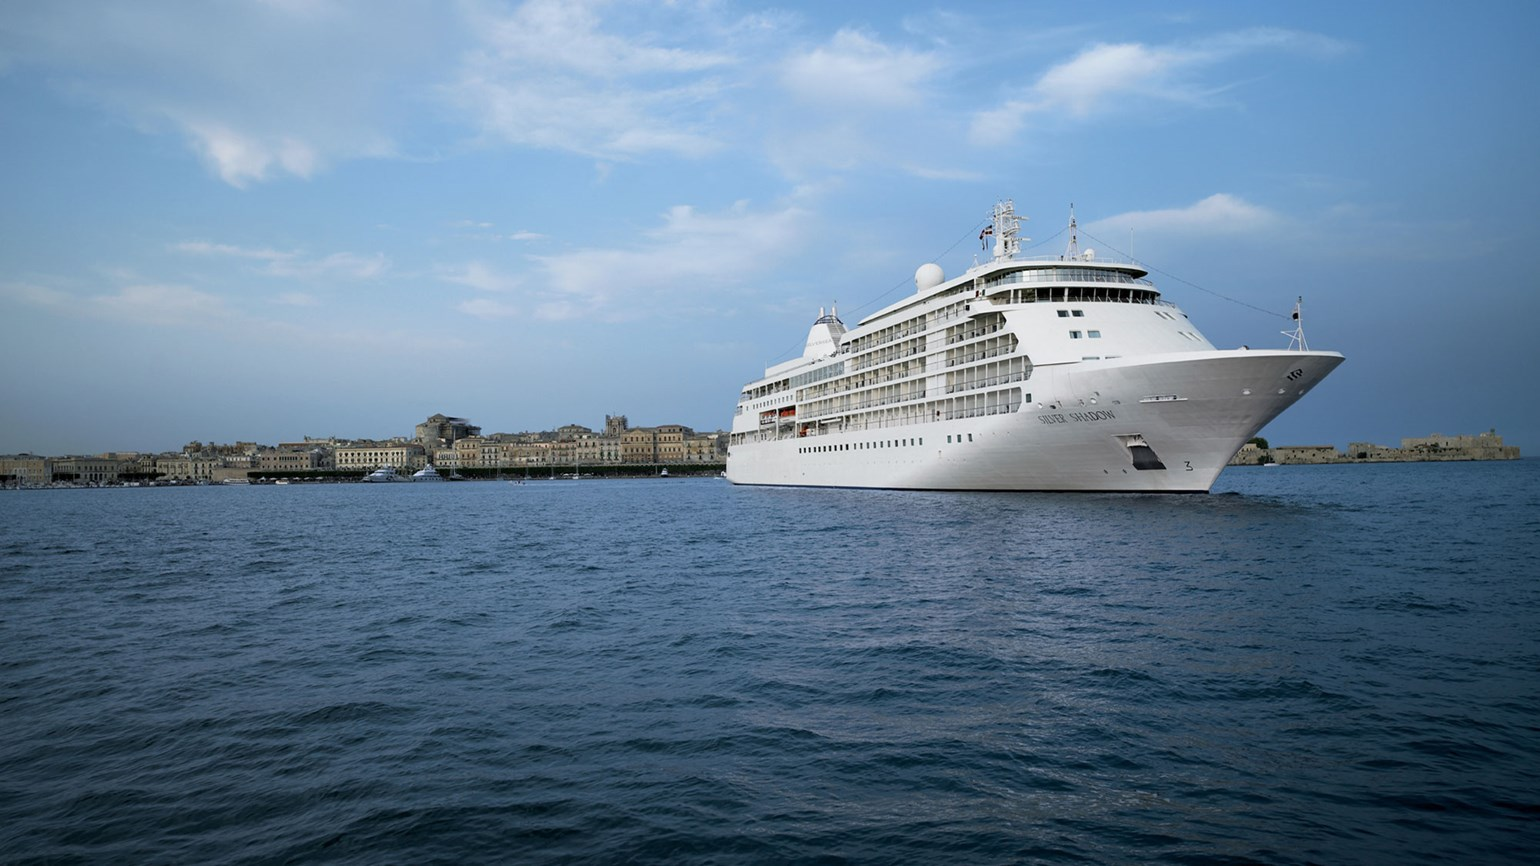 Silversea is the latest line to sweeten the pot on inclusions